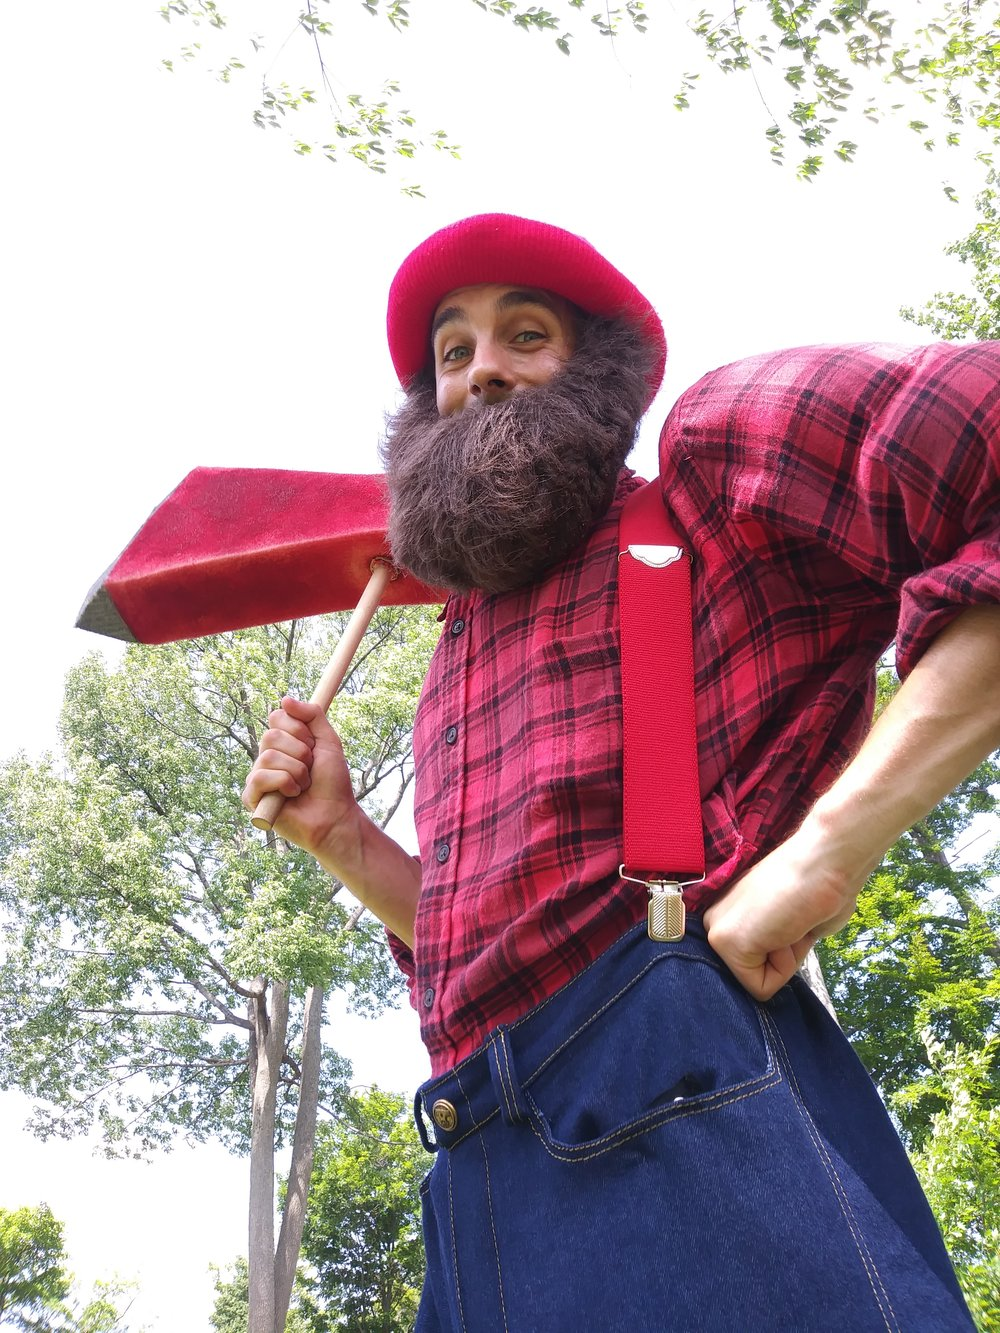 Lumberjack with giant fake axe on stilts